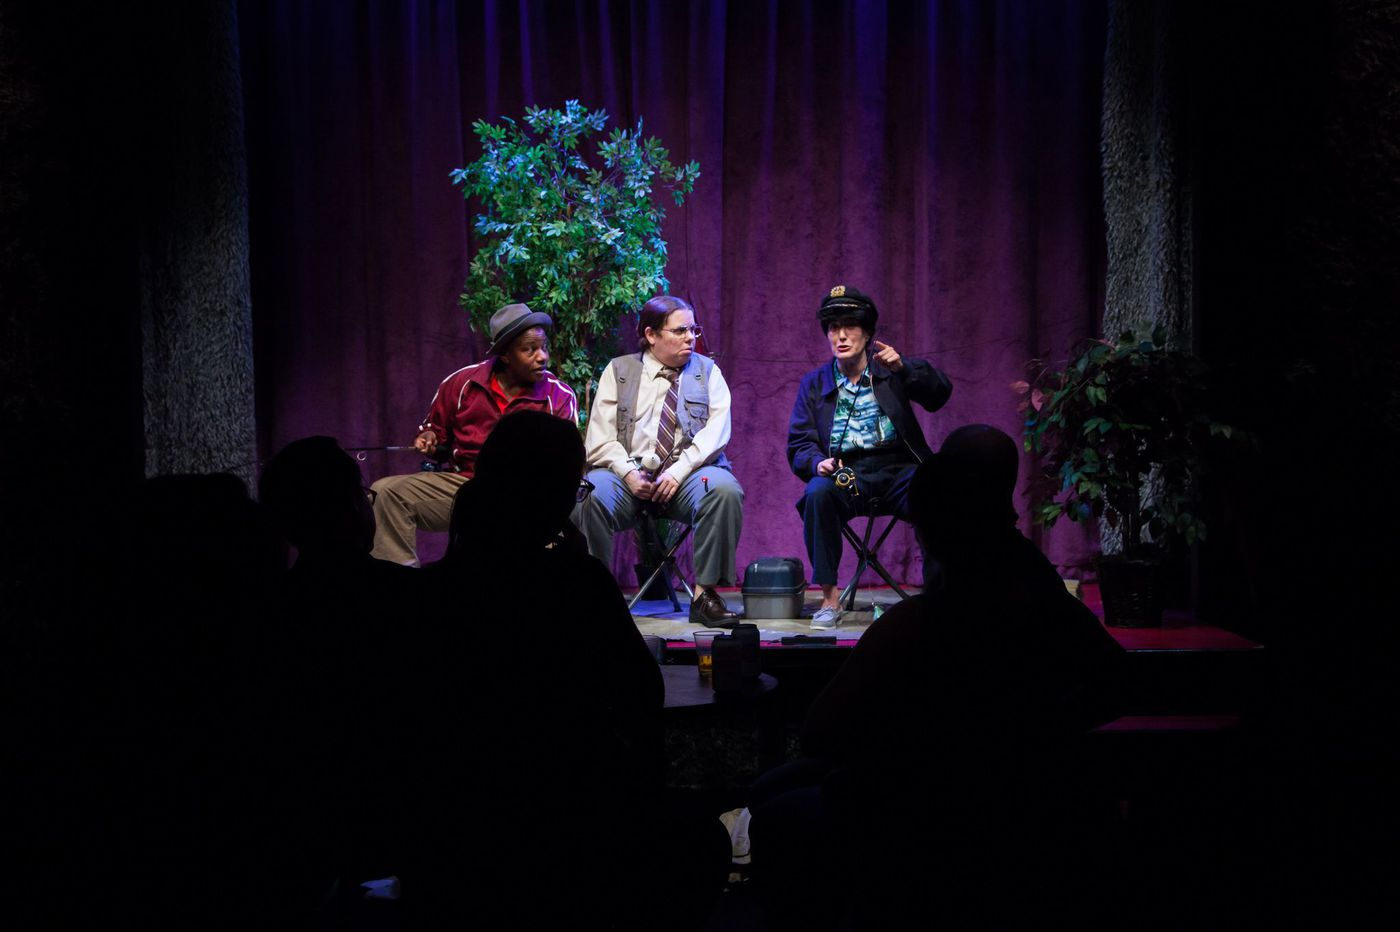 'A Hard Time' by Pig Iron Theatre at FringeArts: Not ready yet, but worthwhile